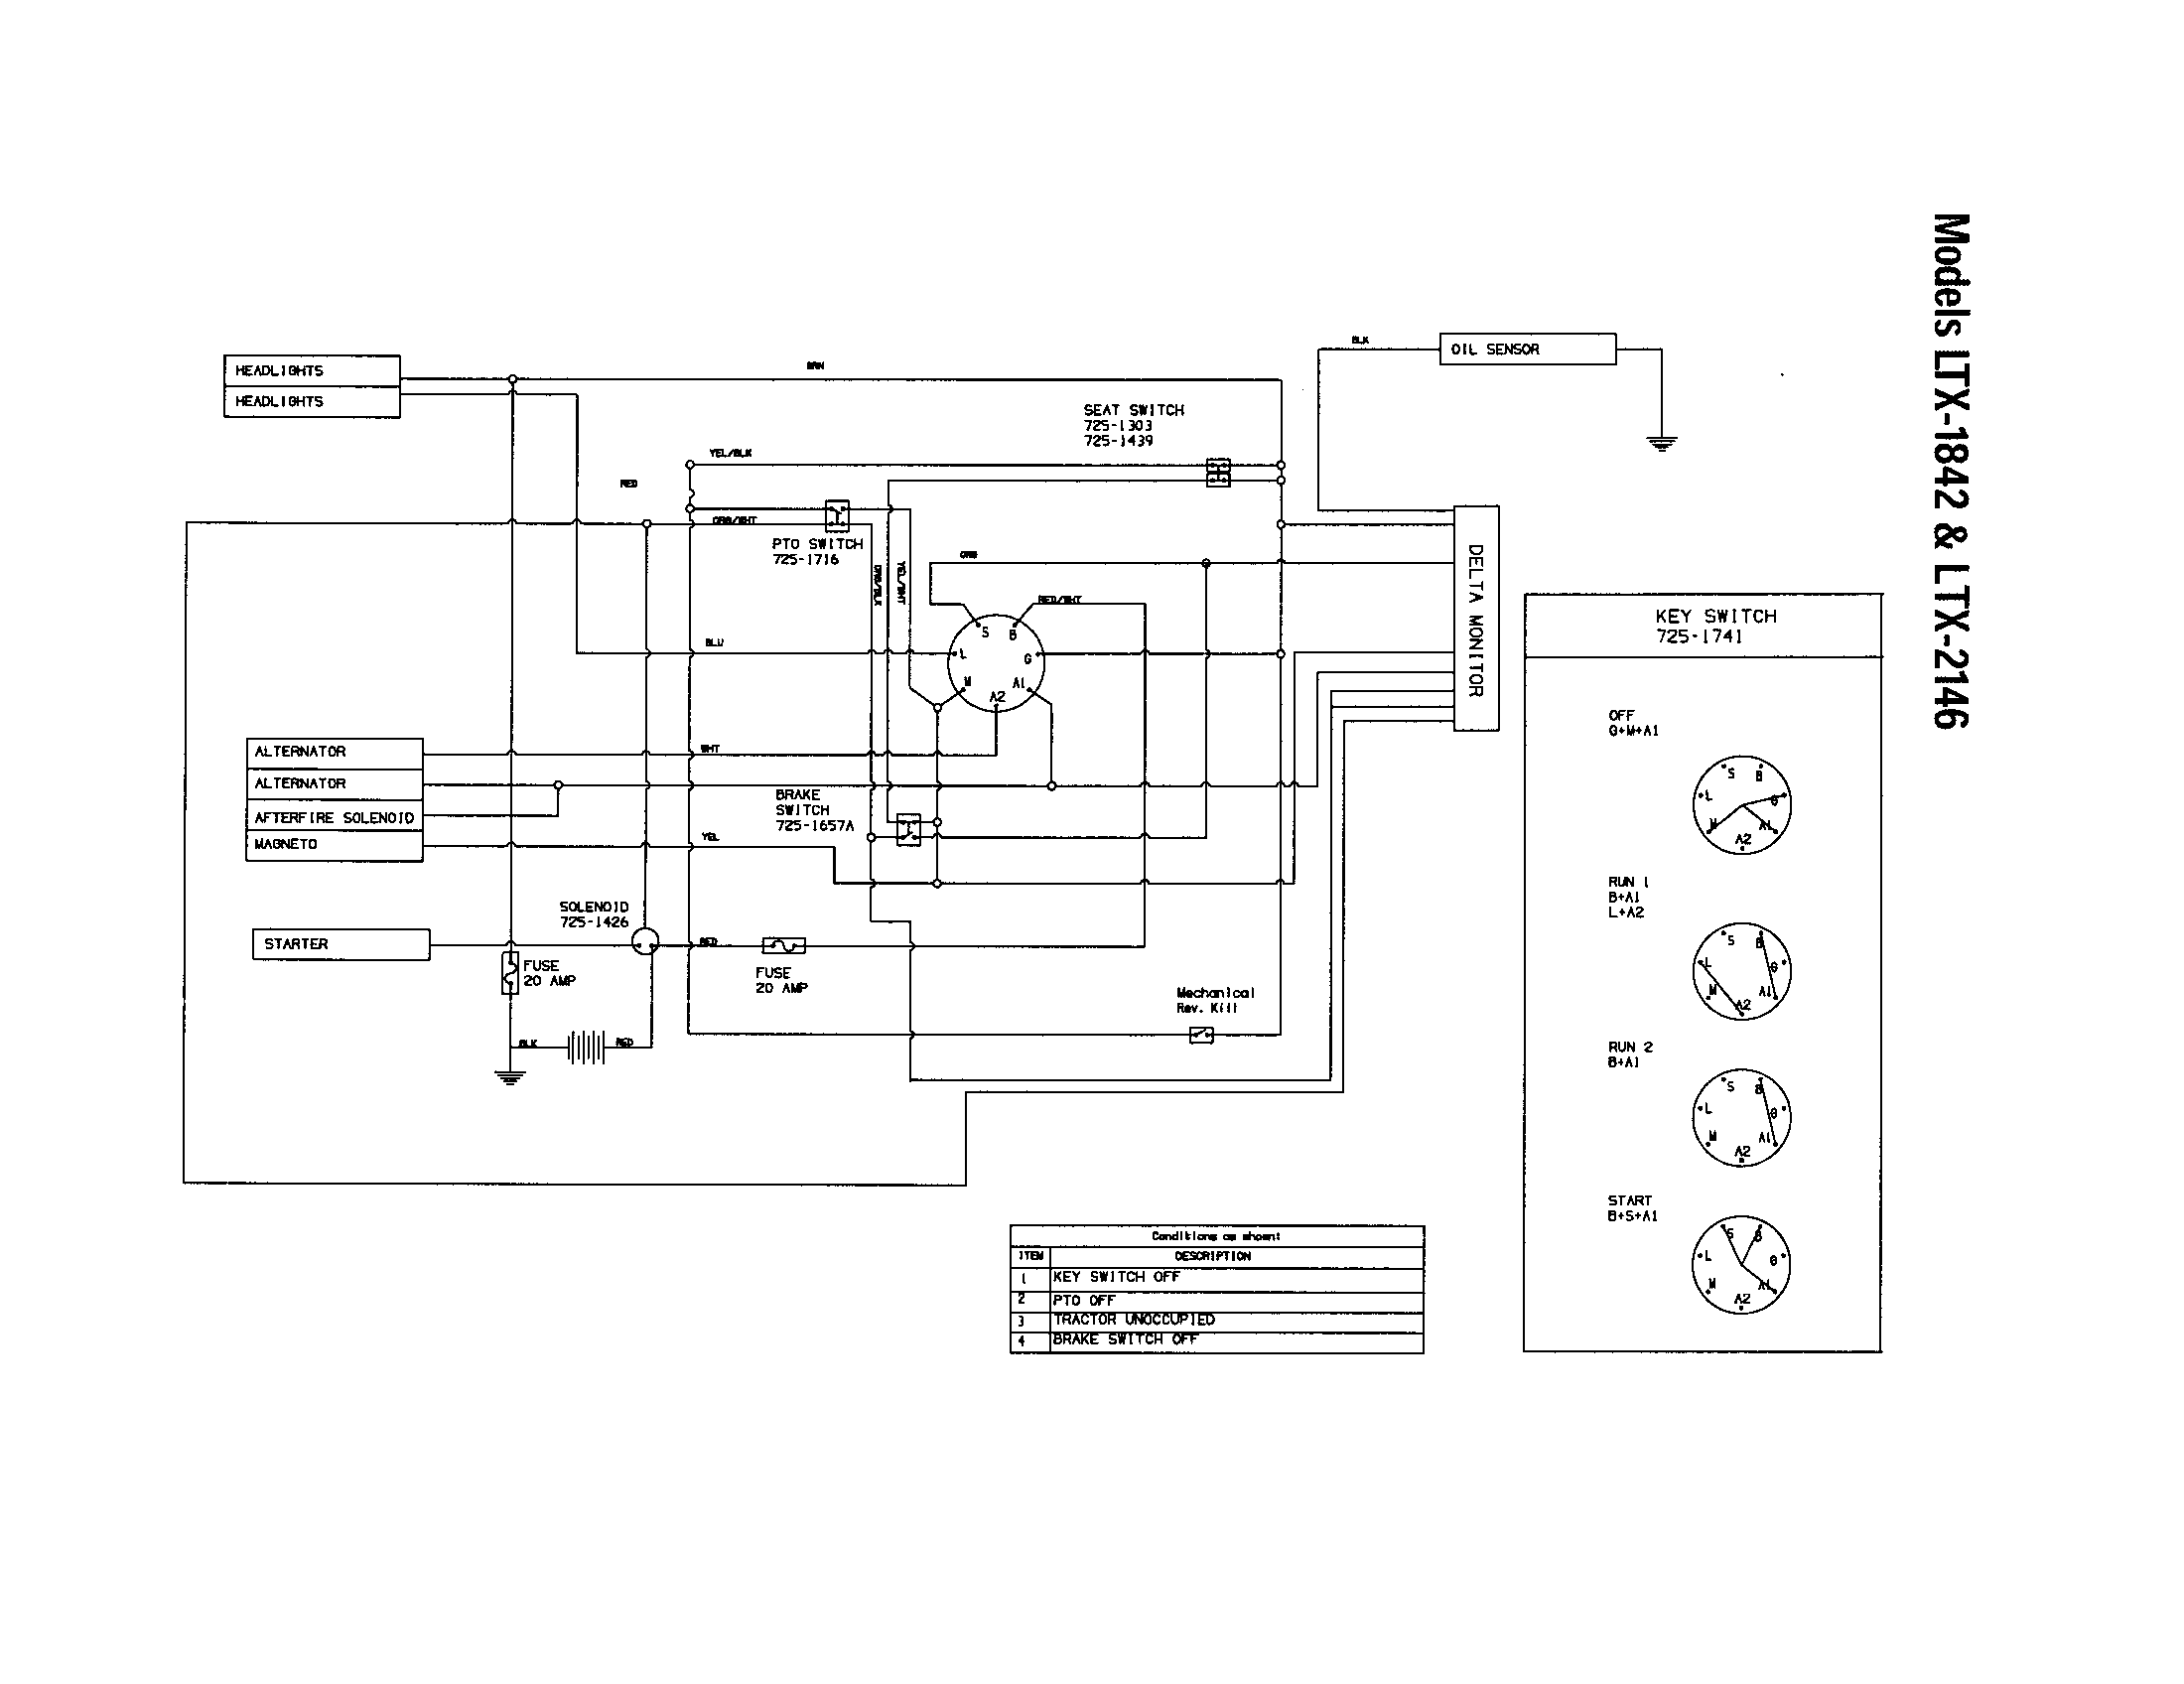 snapper mower electrical diagram ff 5283  troy bilt pony wiring diagram together with snapper lawn  ff 5283  troy bilt pony wiring diagram